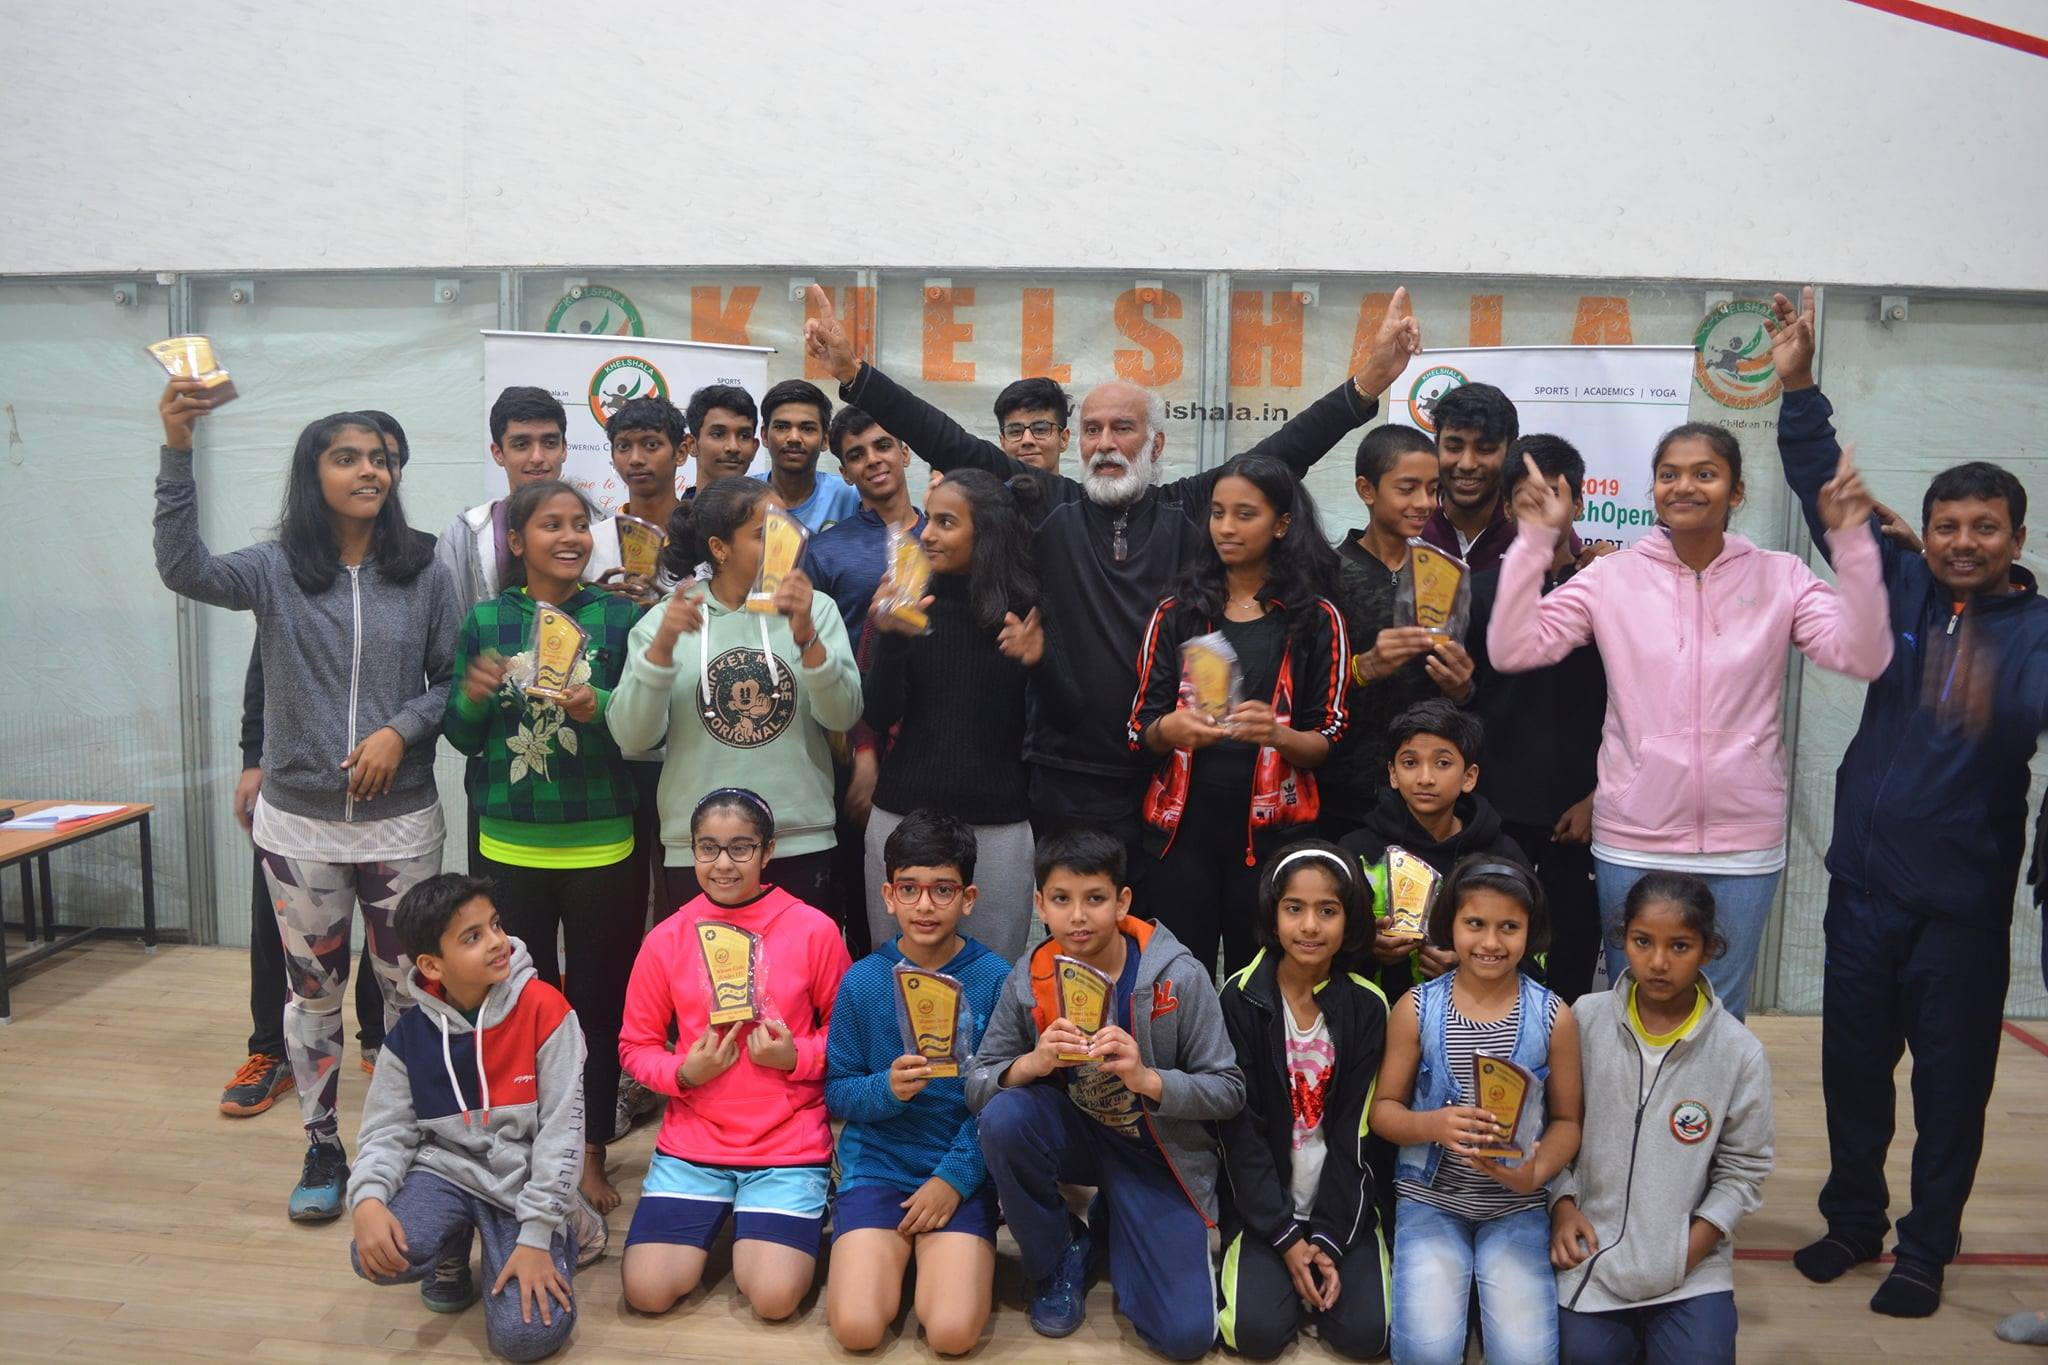 4th Khelshala Junior Squash Open, Chandigarh UT, India